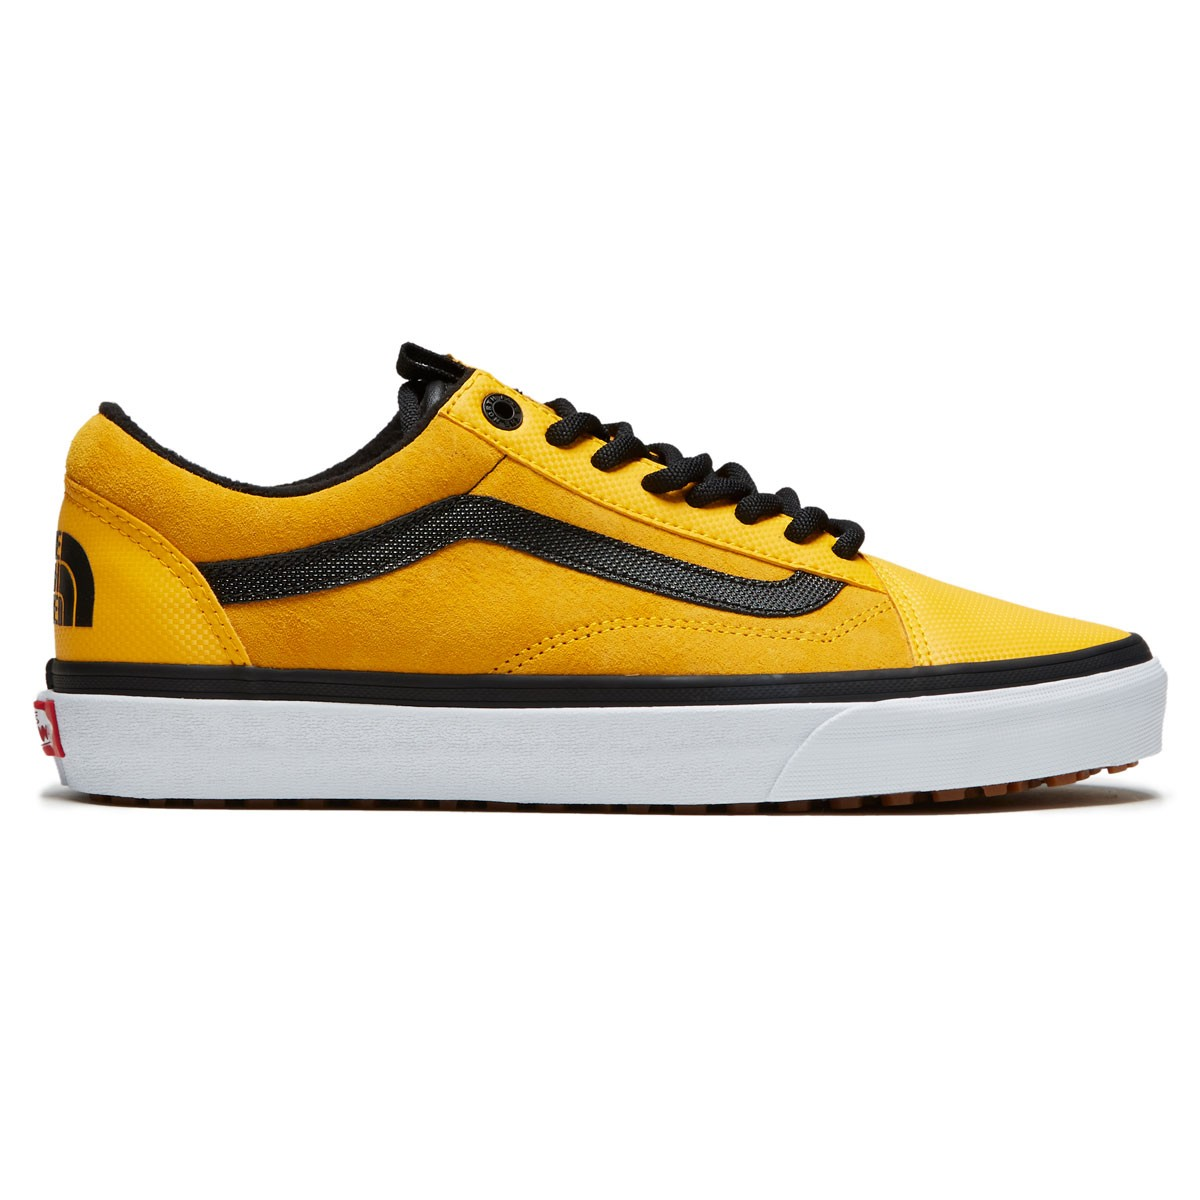 d9232937839a98 Vans X The North Face Old Skool MTE DX Shoes - Yellow Black - 10.0